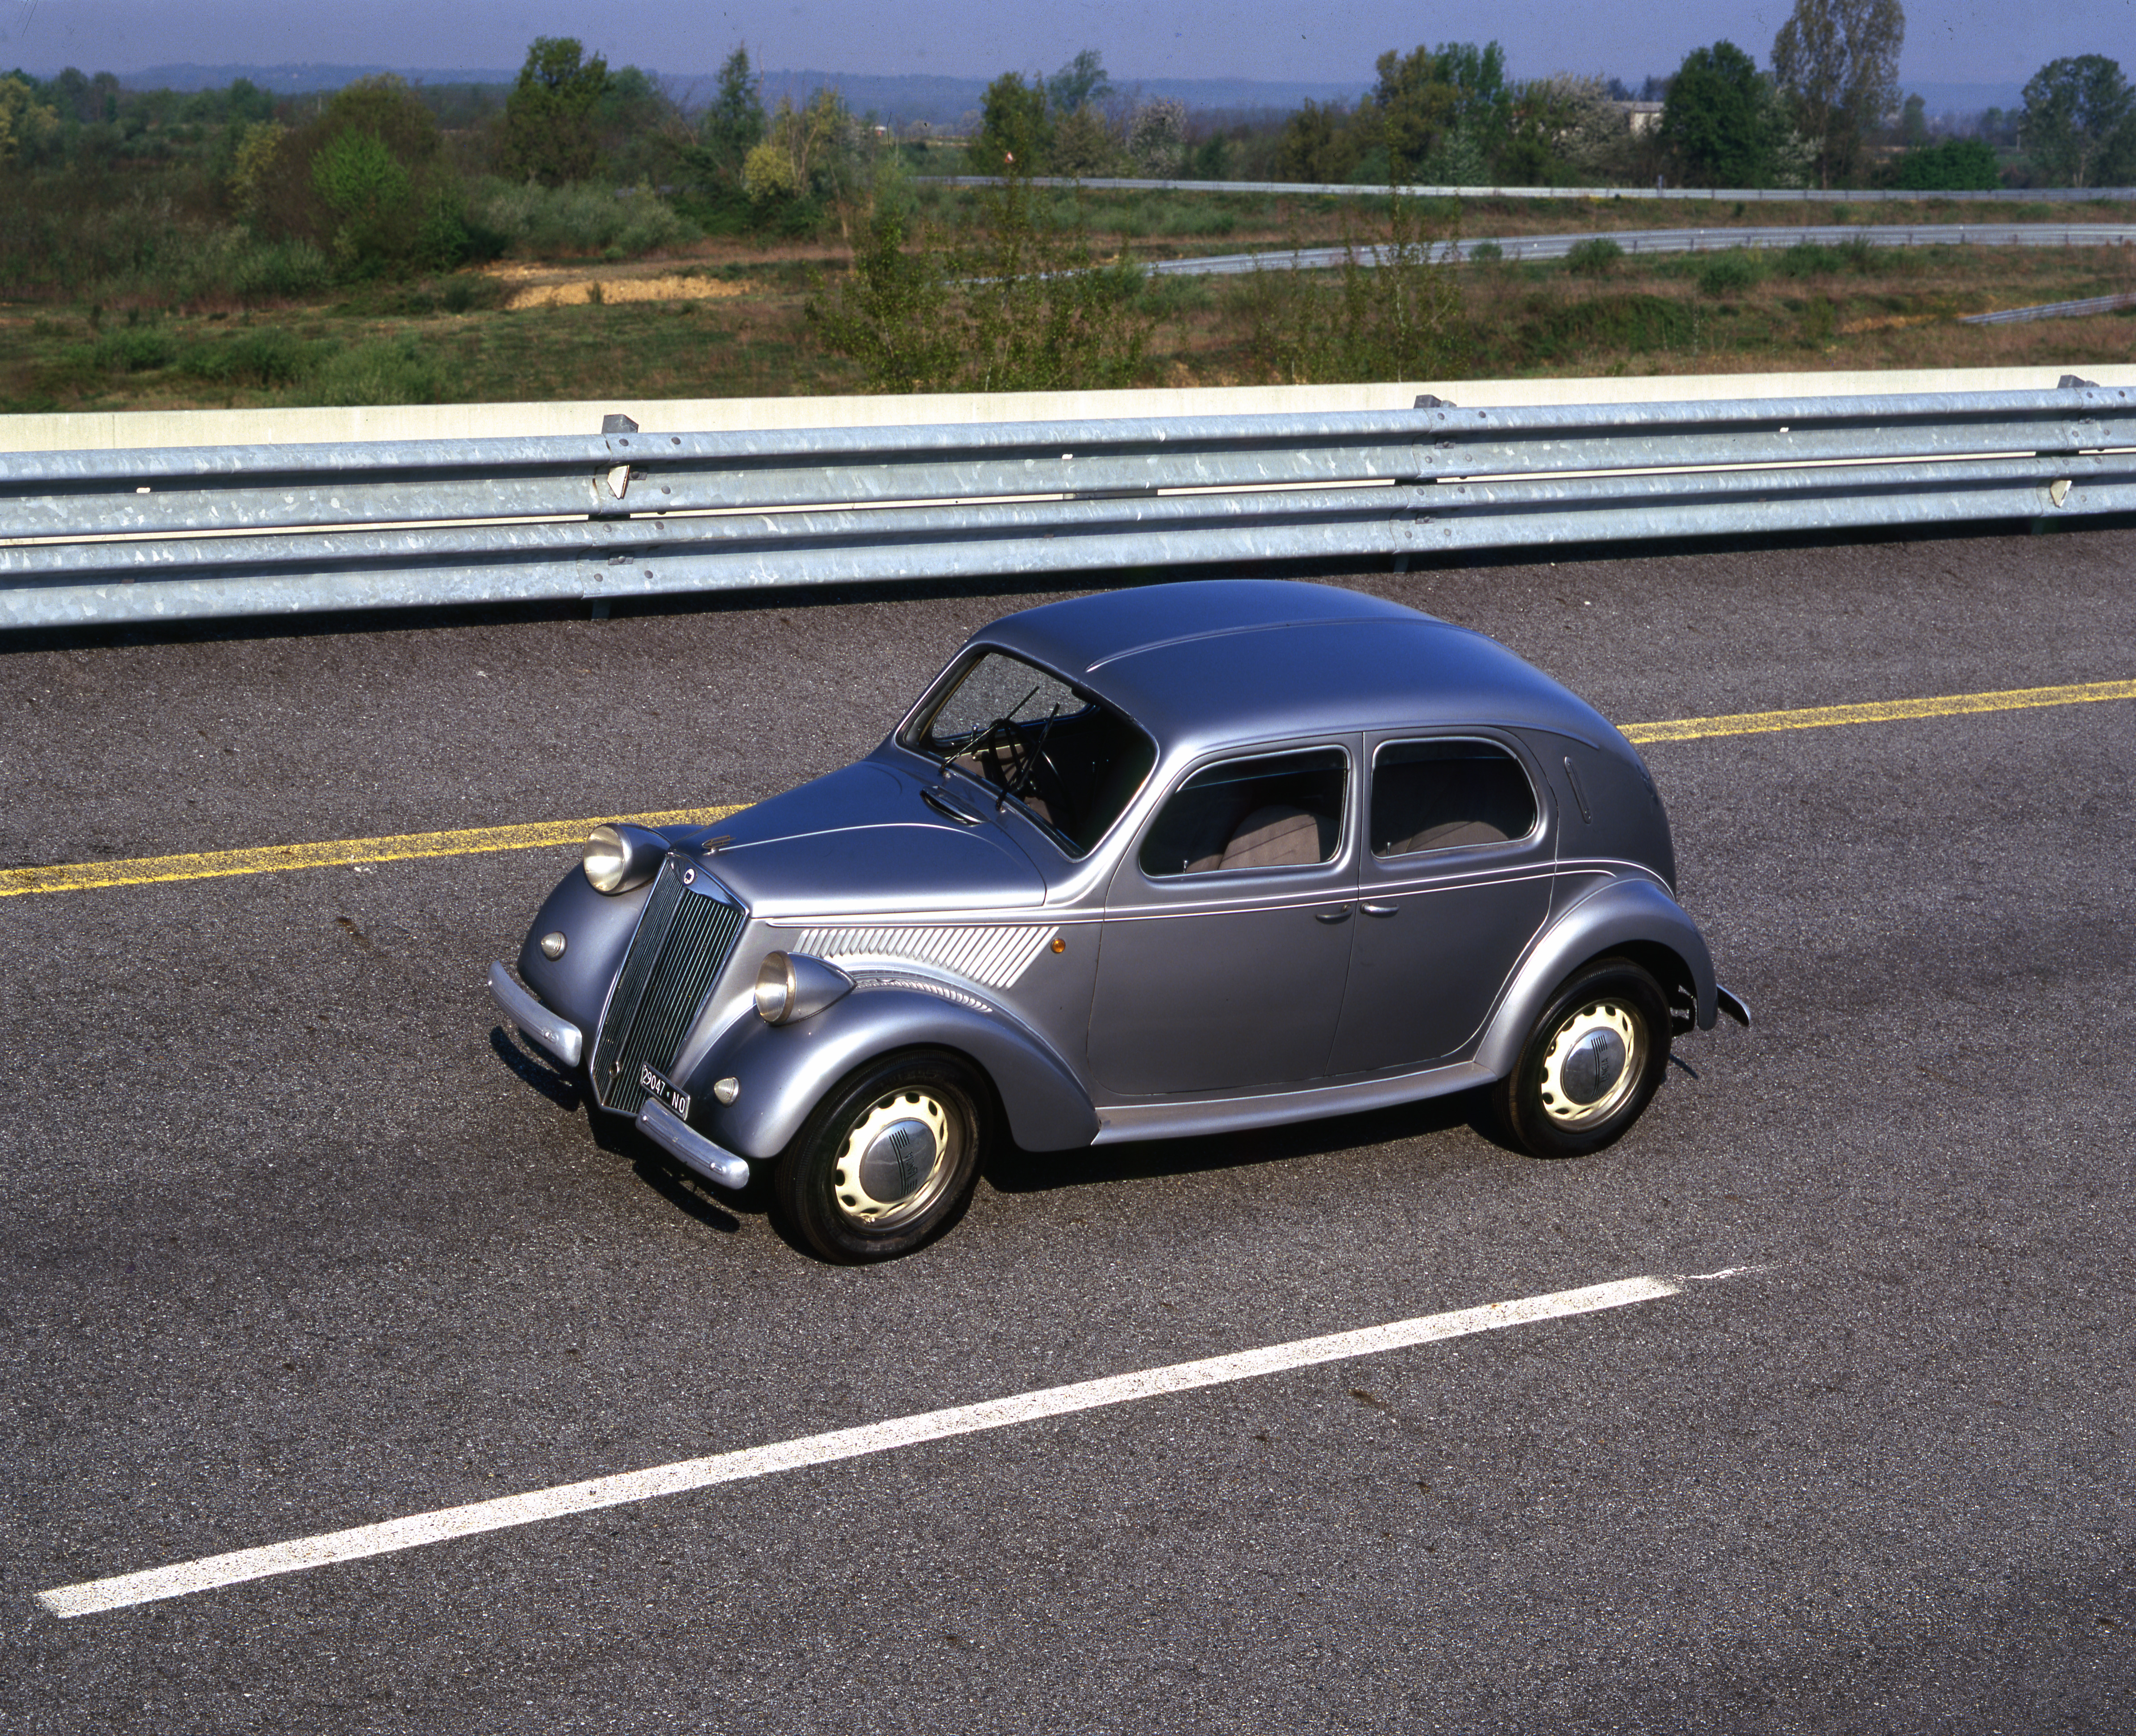 Lancia Ardea, Lancia's 'most popular' model was guided by his widow, ClassicCars.com Journal